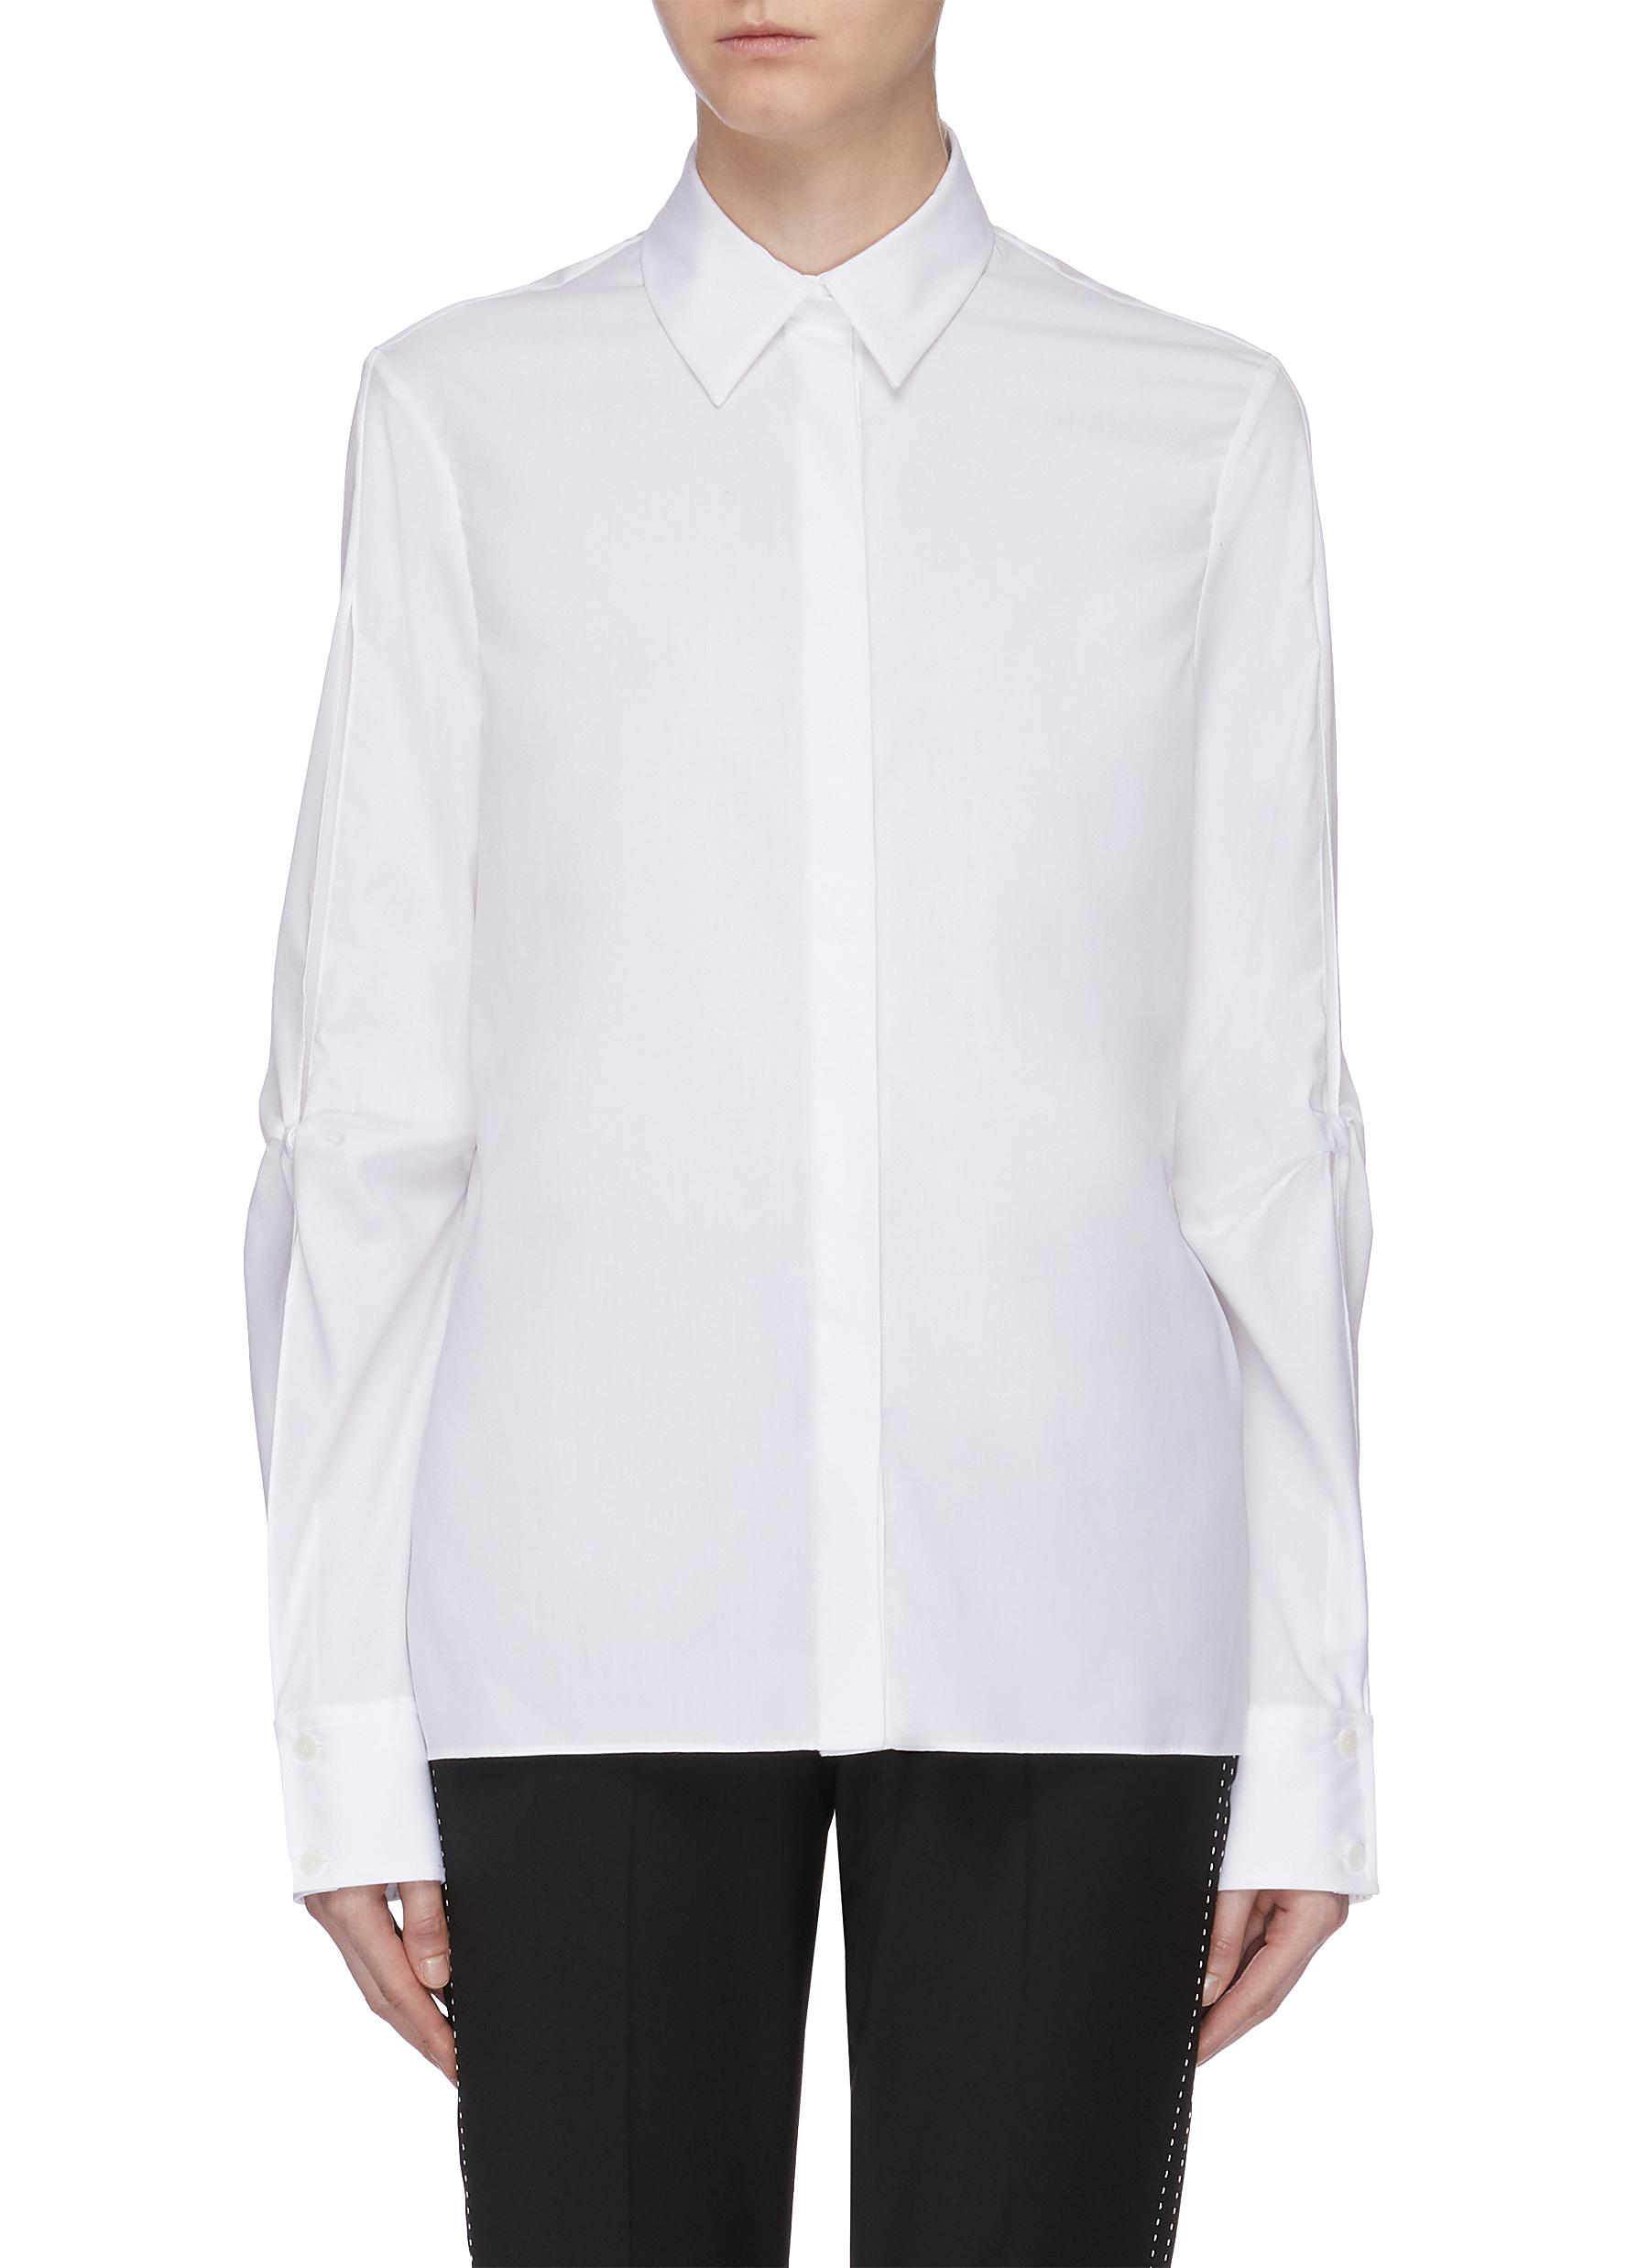 Hinge Knot cutout sleeve shirt by Dion Lee